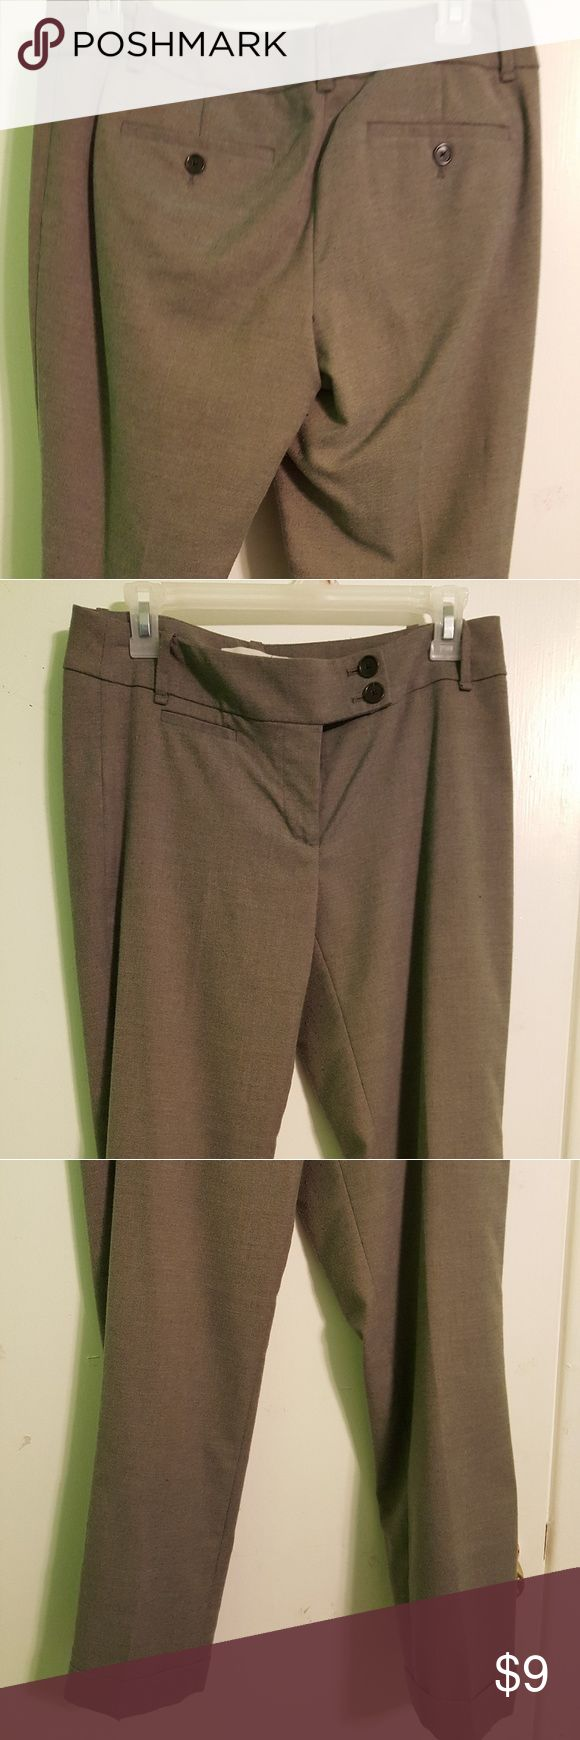 Light brown slacks Loft size 2 light brown slacks. Great for work with heals, or flats.  Very good condition. Just to big for me. LOFT Pants Trousers